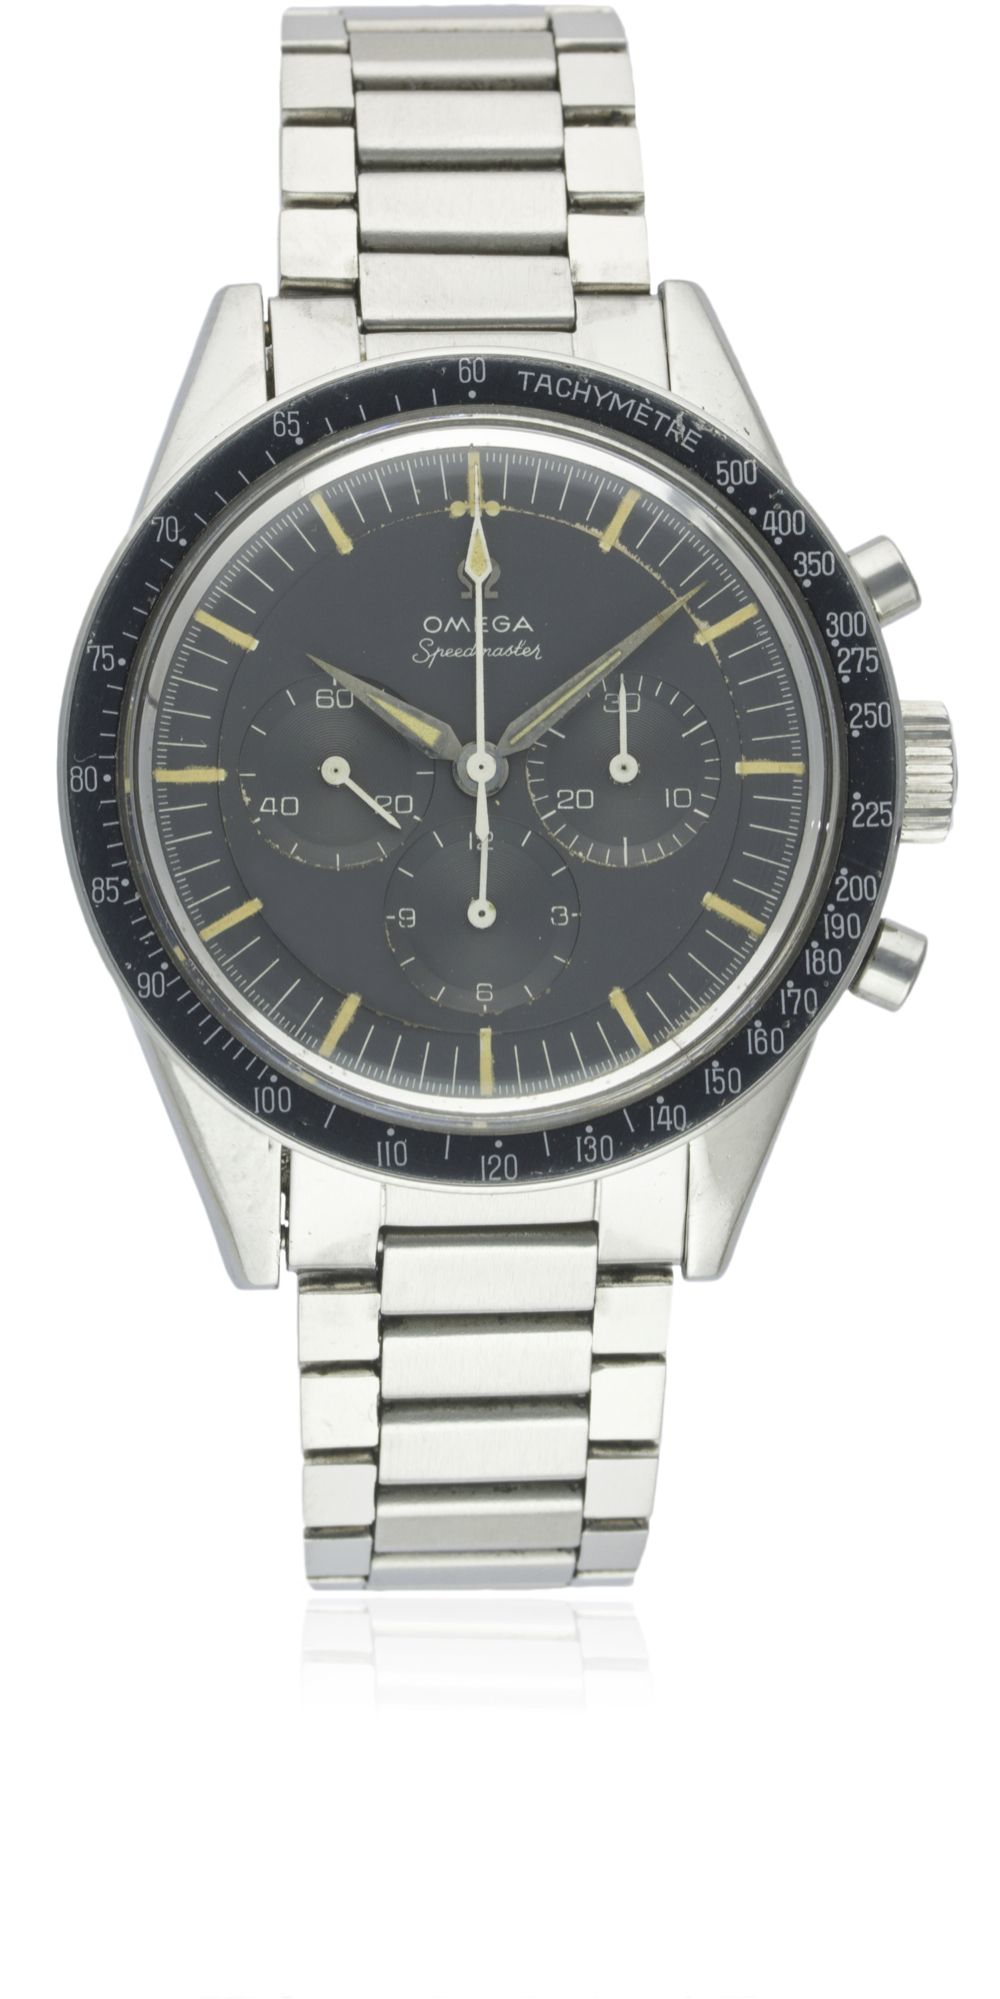 "AN EXTREMELY RARE GENTLEMAN'S STAINLESS STEEL OMEGA SPEEDMASTER ""SPECIAL PROJECTS"" CHRONOGRAPH - Image 3 of 14"